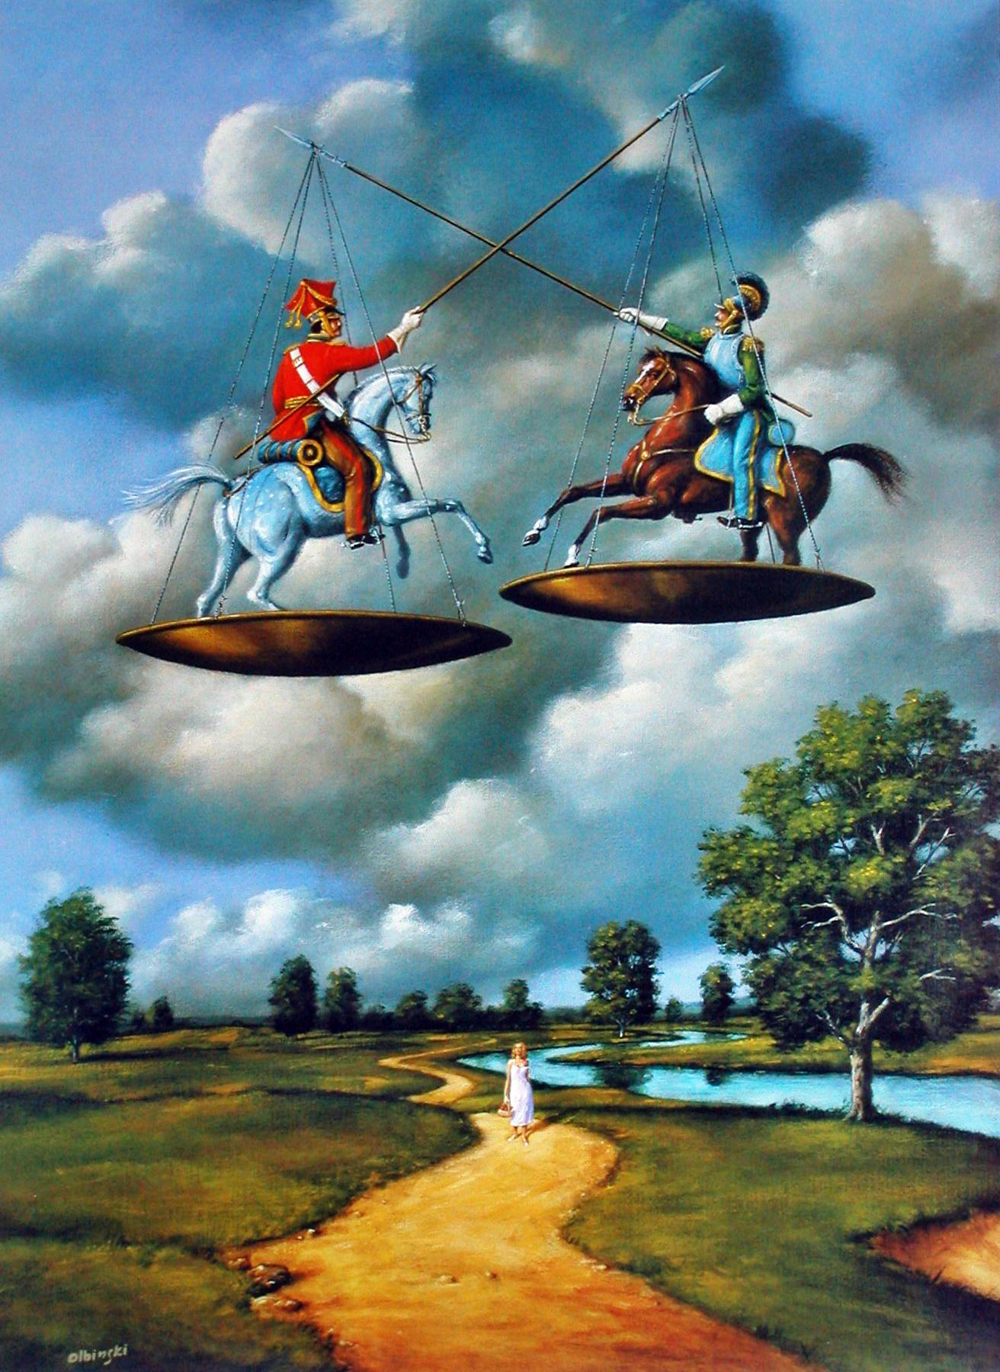 The Surrealist Art Of Rafal Olbinski